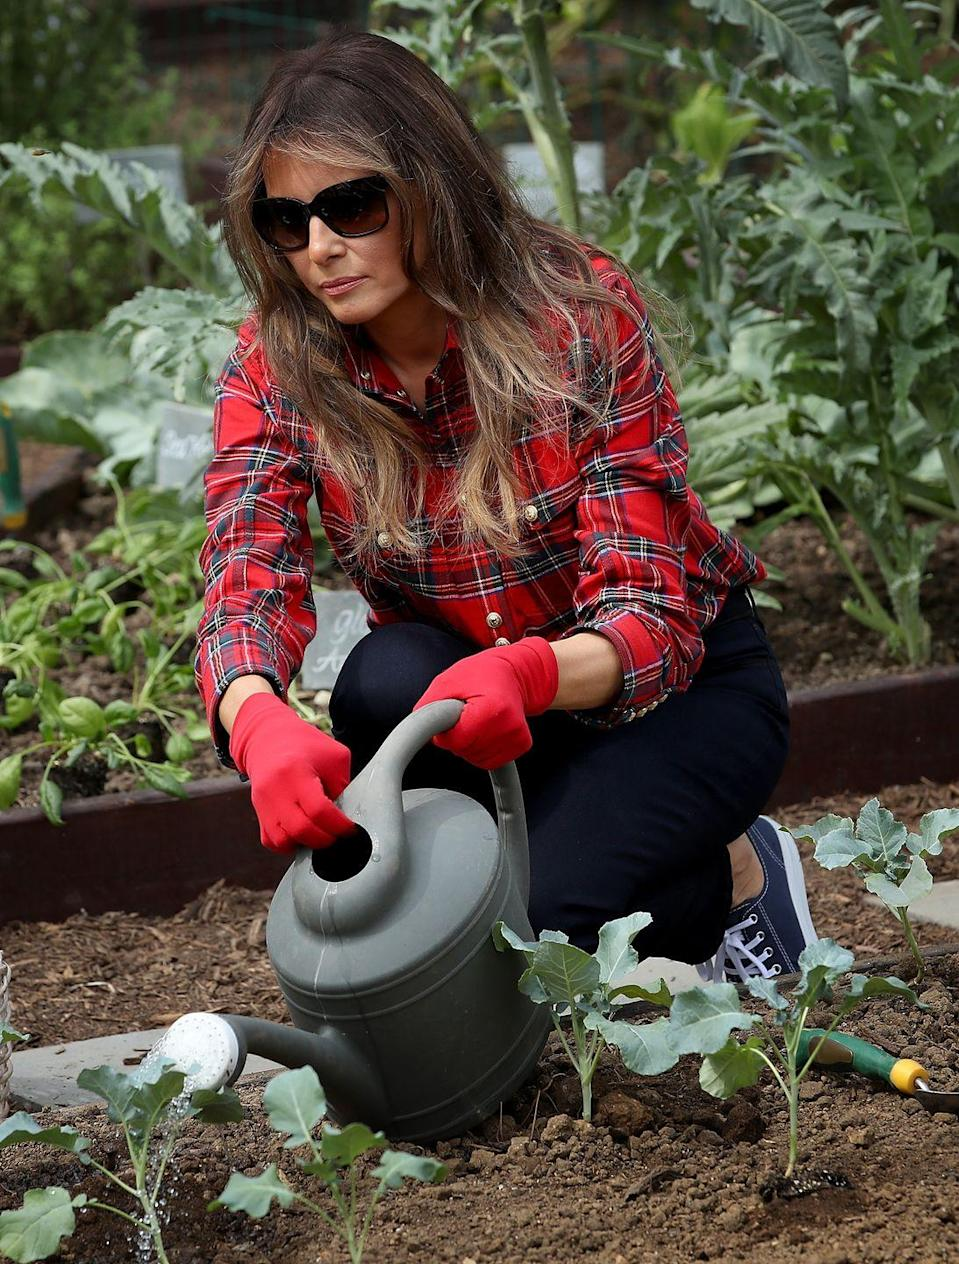 "<p>The first lady wore a $1,380 shirt to her first White House garden event in September. To <a href=""https://www.msn.com/en-ca/lifestyle/style/melania-trump-wore-a-dollar1380-shirt-to-harvest-vegetables-from-the-white-house-garden-%E2%80%94-and-twitter-had-feelings/ar-AAspkjD"" rel=""nofollow noopener"" target=""_blank"" data-ylk=""slk:quote one Twitter user"" class=""link rapid-noclick-resp"">quote one Twitter user</a>, ""That's obscene."" </p>"